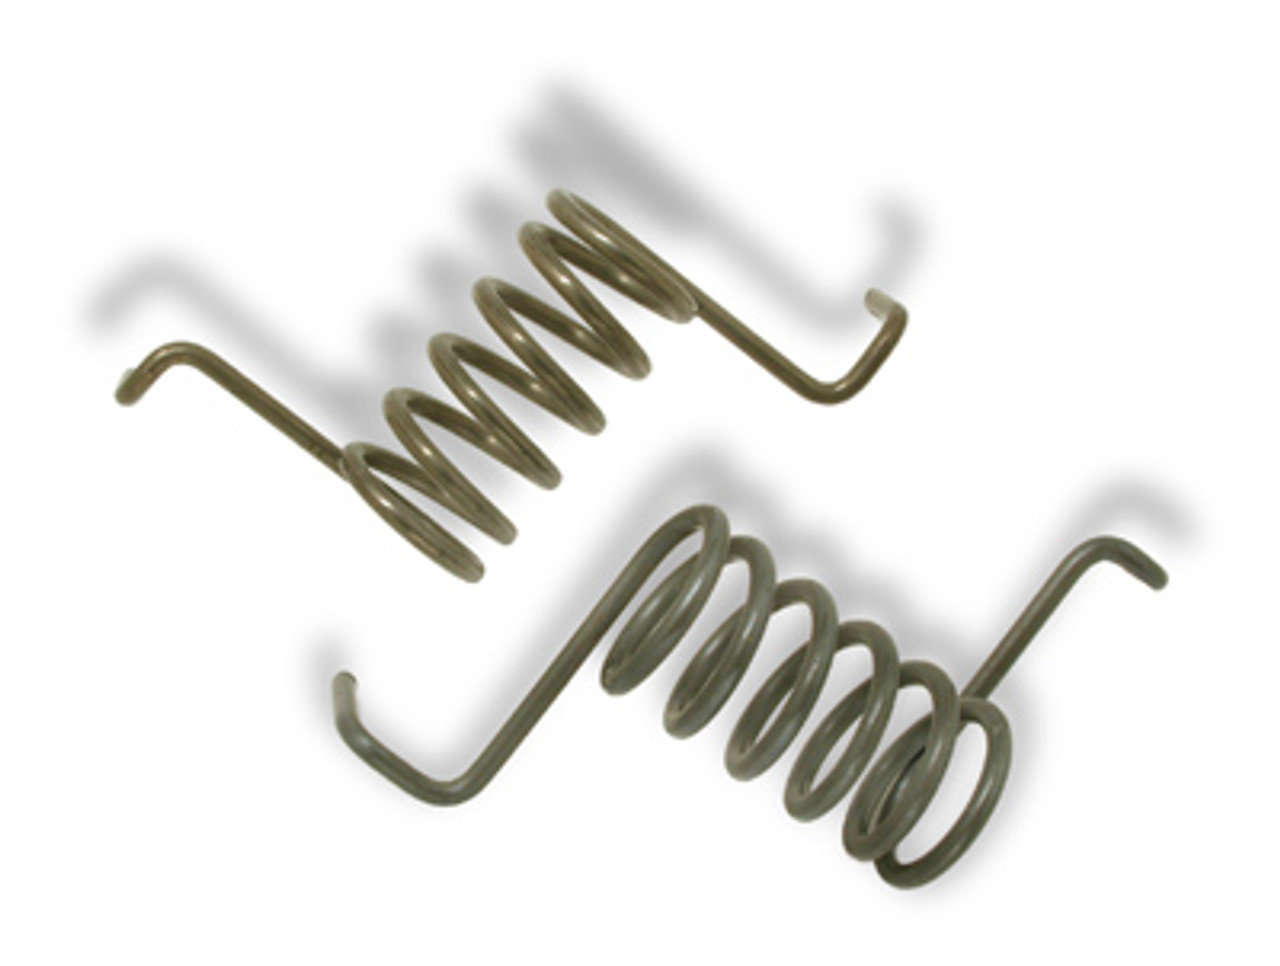 Steel Springs for MU-C, X-15,X-20, MU2